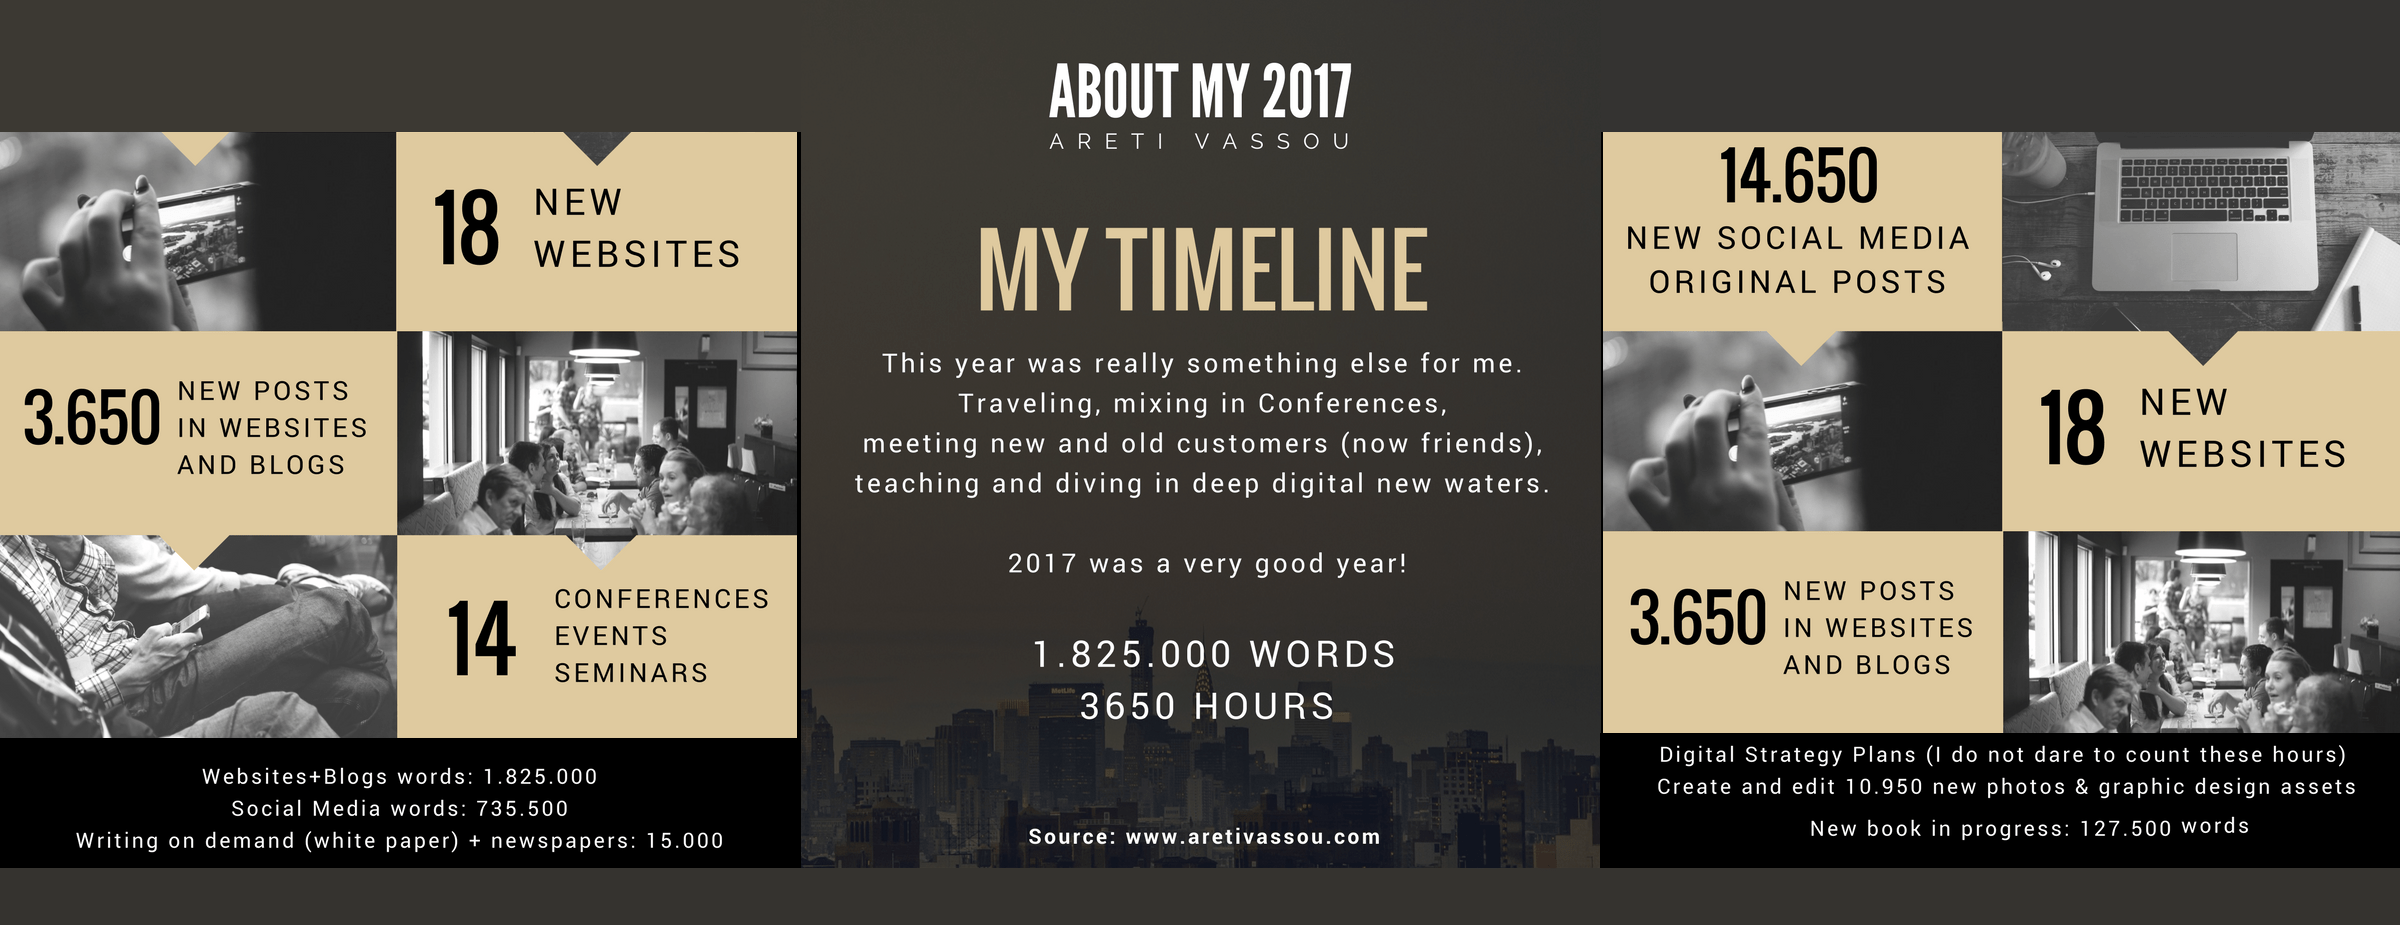 My 2017 Yearbook - Areti Vassou